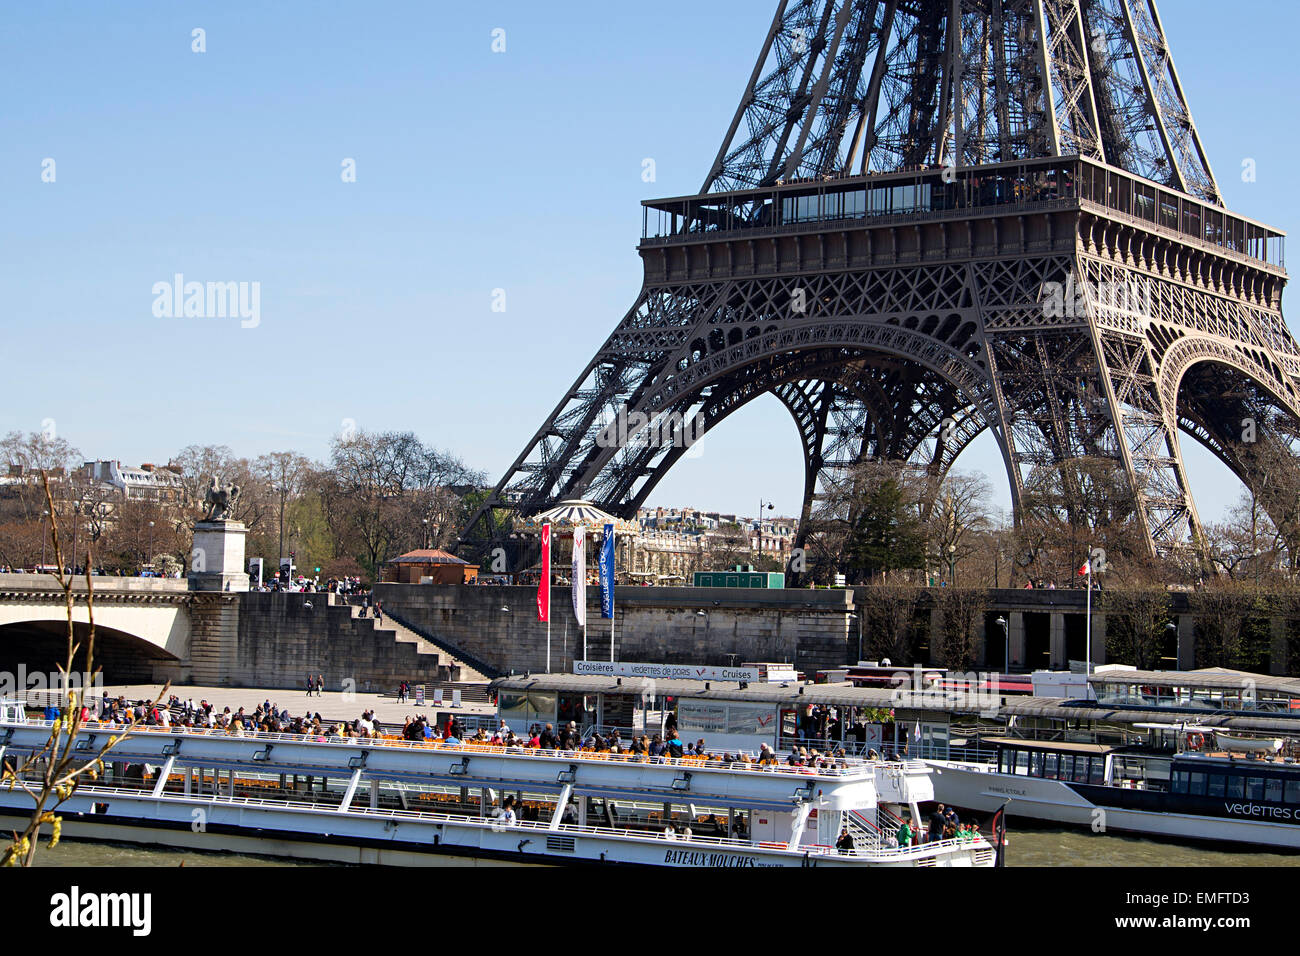 Paris Eiffel Tower cruisers, motor launches, cruises, carousel attractions for visitors. - Stock Image